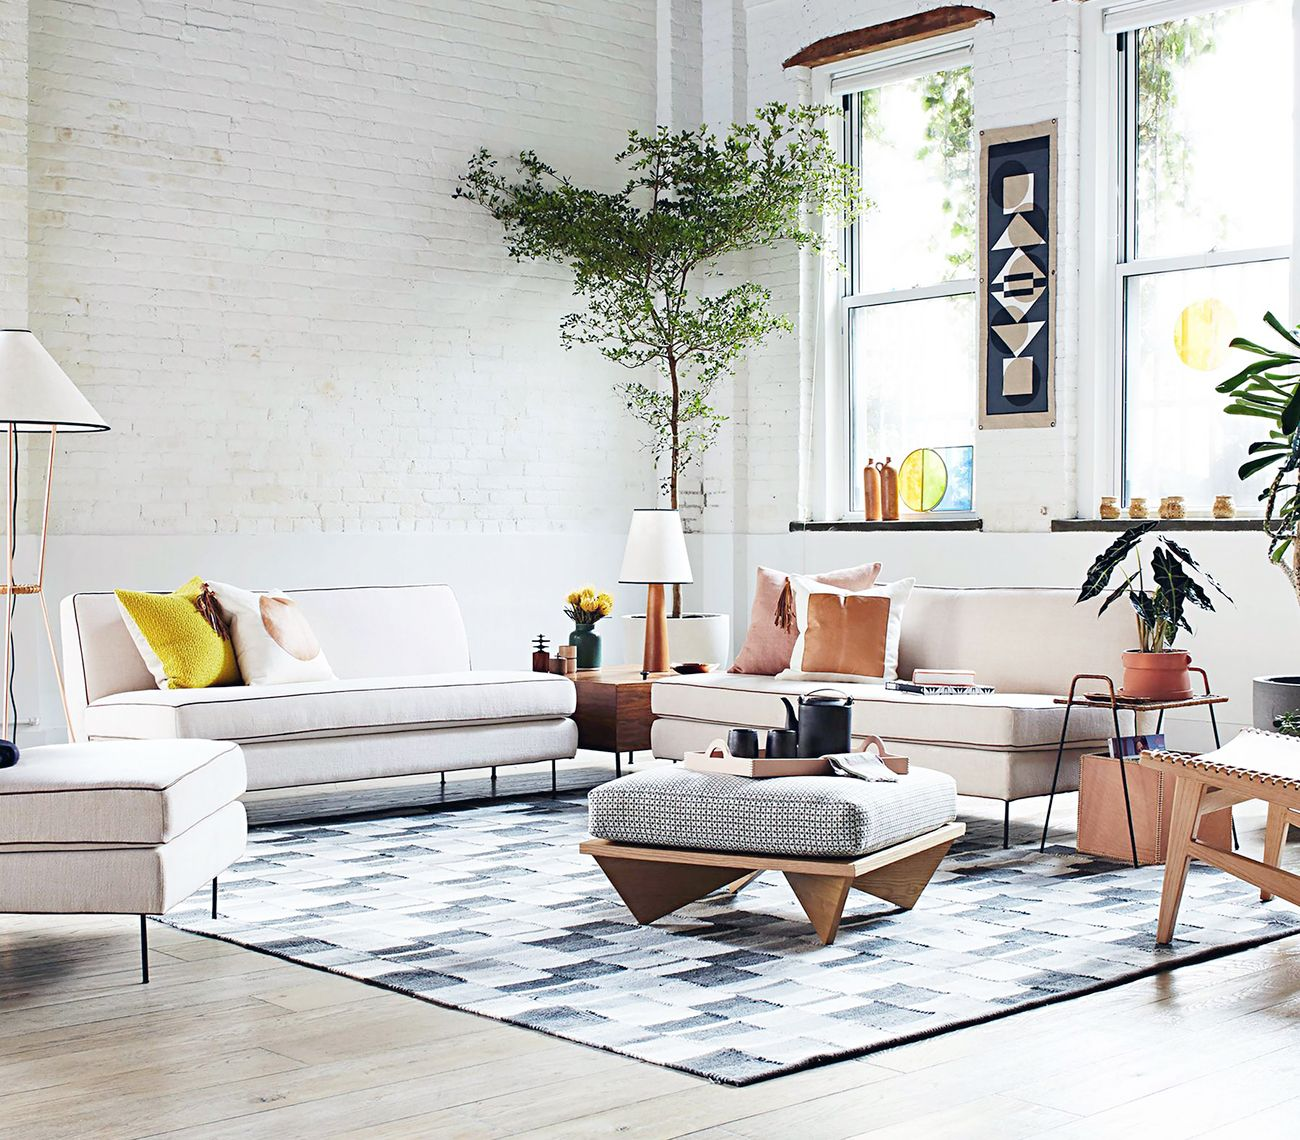 Is West Elm Furniture Good Quality: Commune's West Elm Collection Is A Study In California